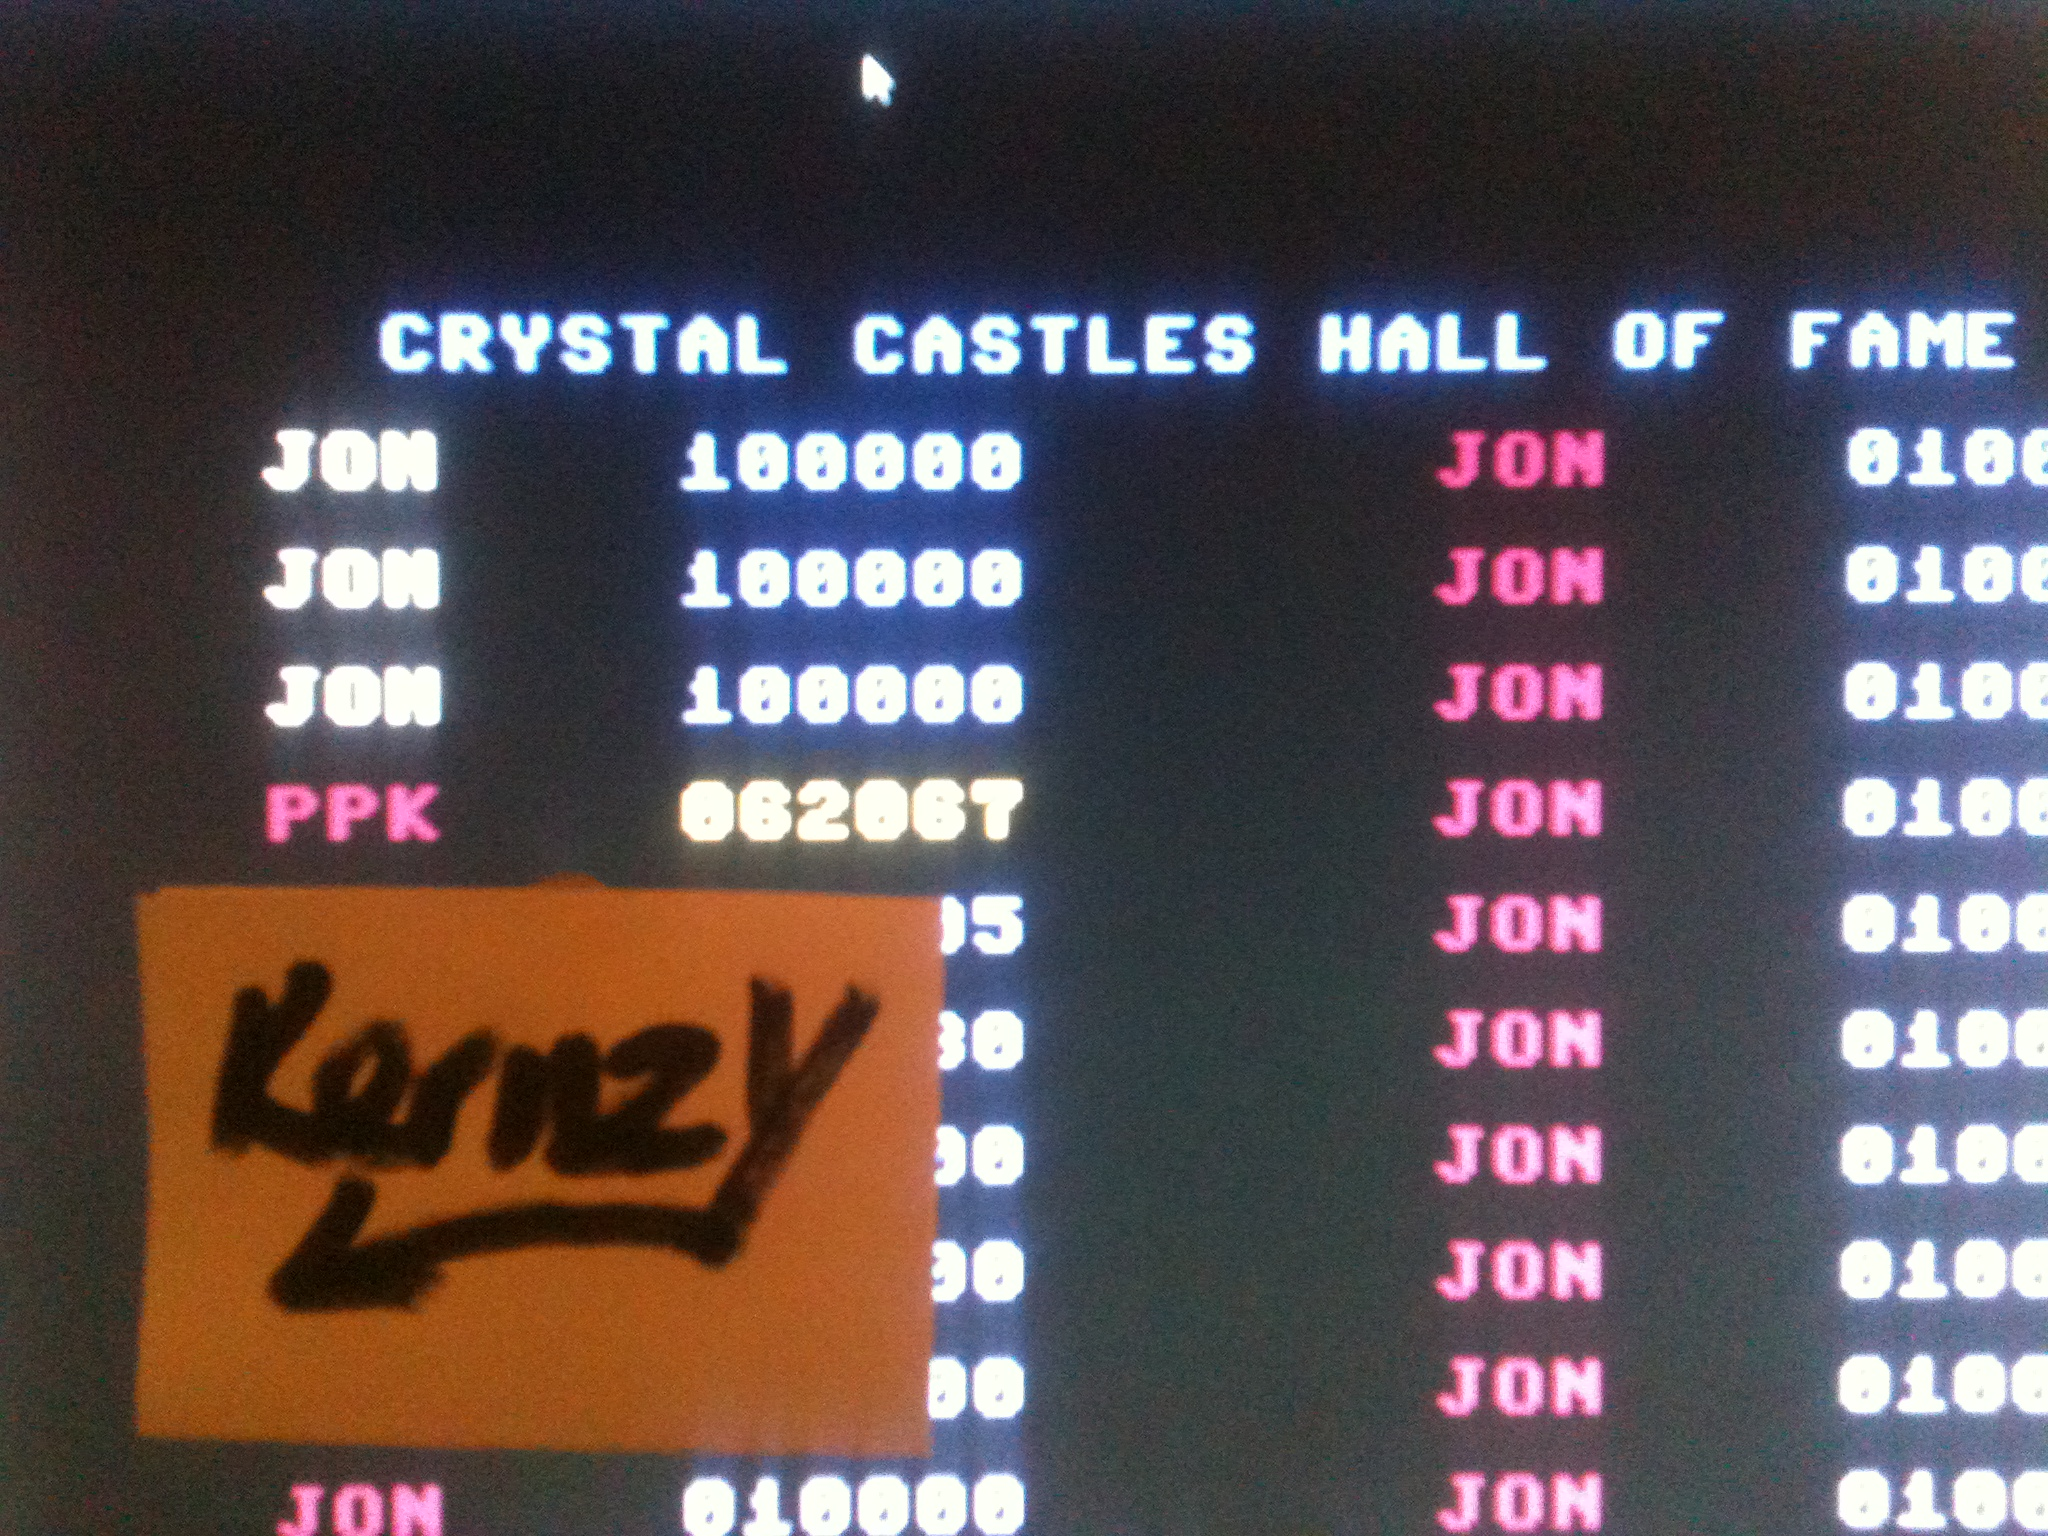 kernzy: Crystal Castles [Thundervision] (Commodore 64 Emulated) 62,067 points on 2015-05-04 13:51:55